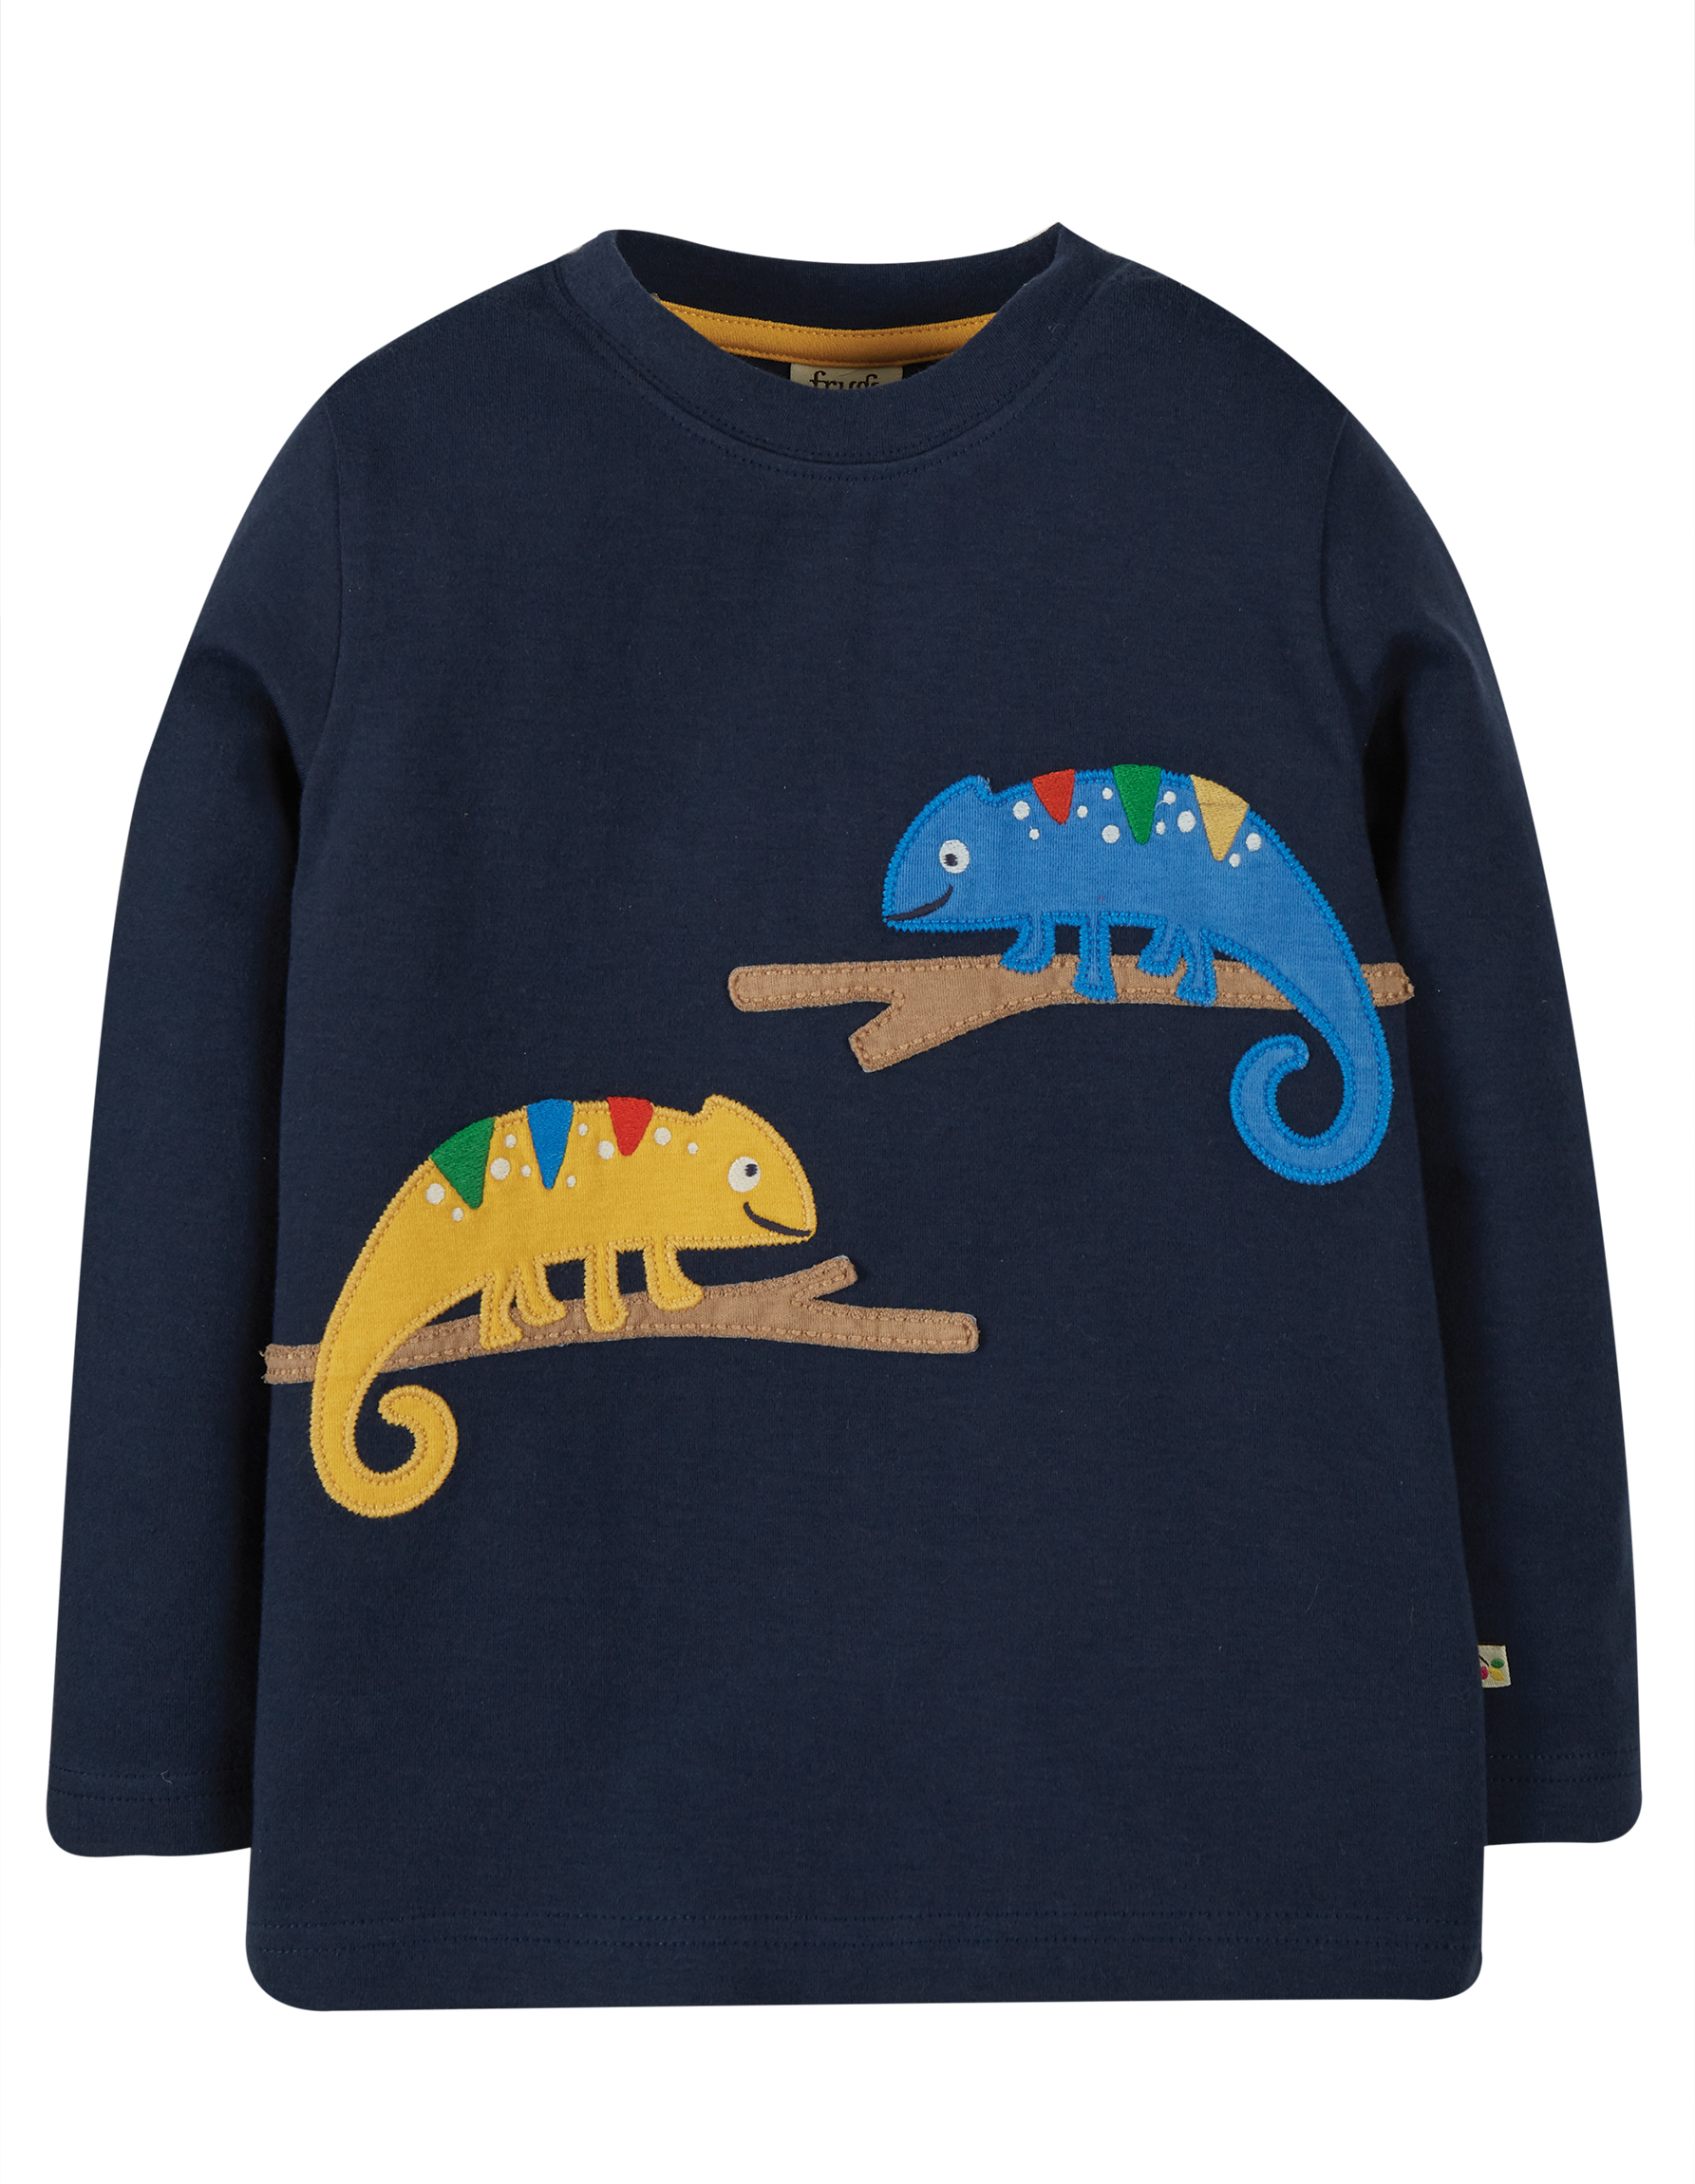 Frugi Adventure Applique Top, Indigo/Chameleon